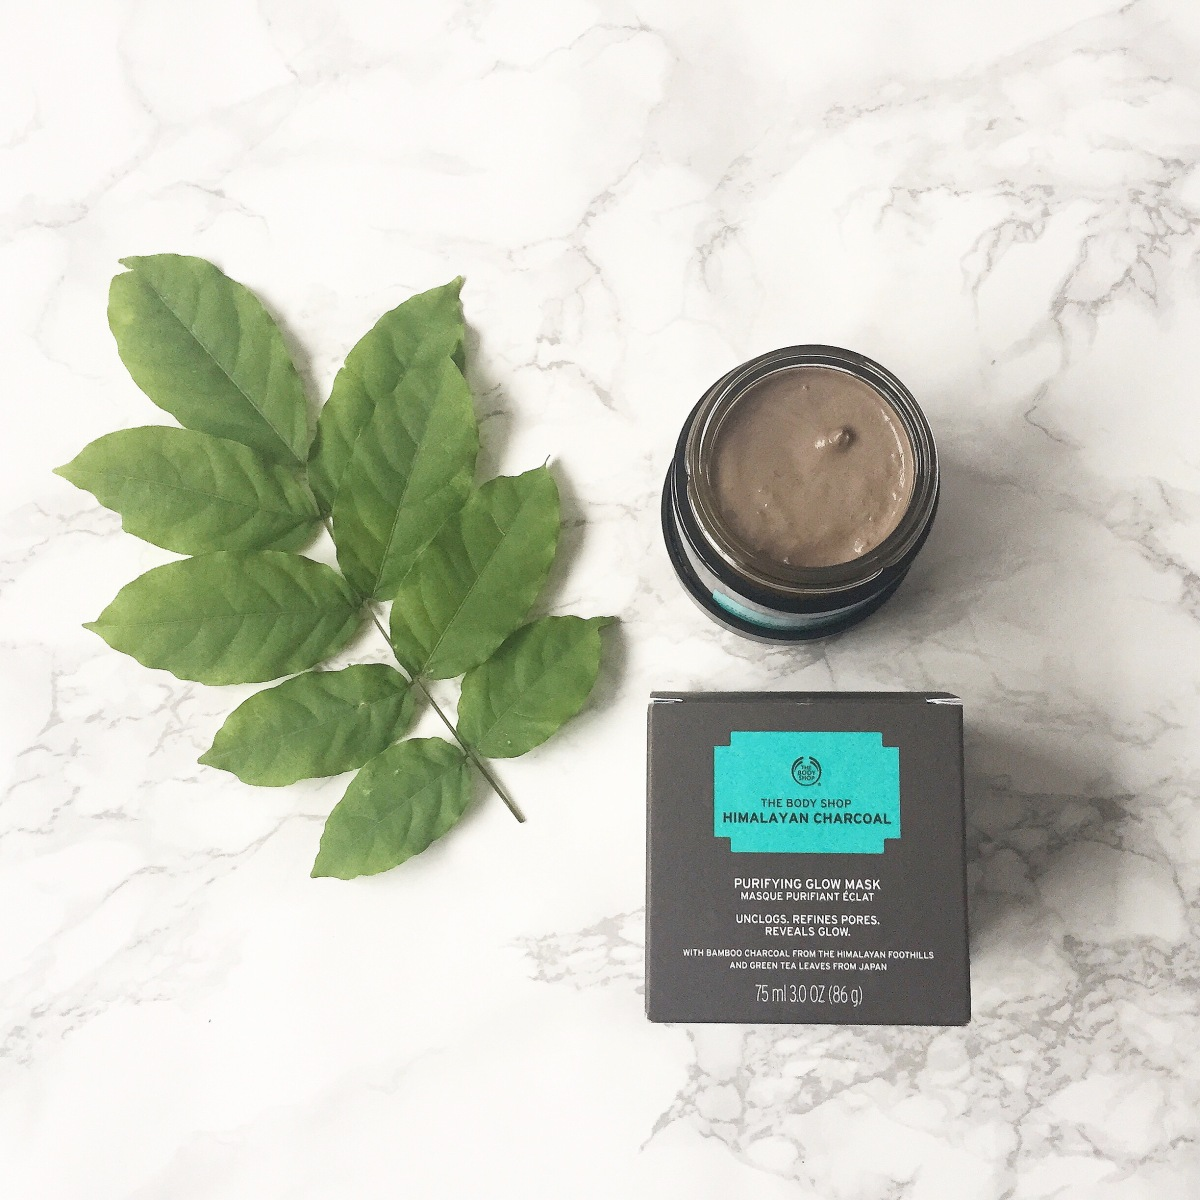 Review: Himalayan Charcoal Purifying Glow Mask